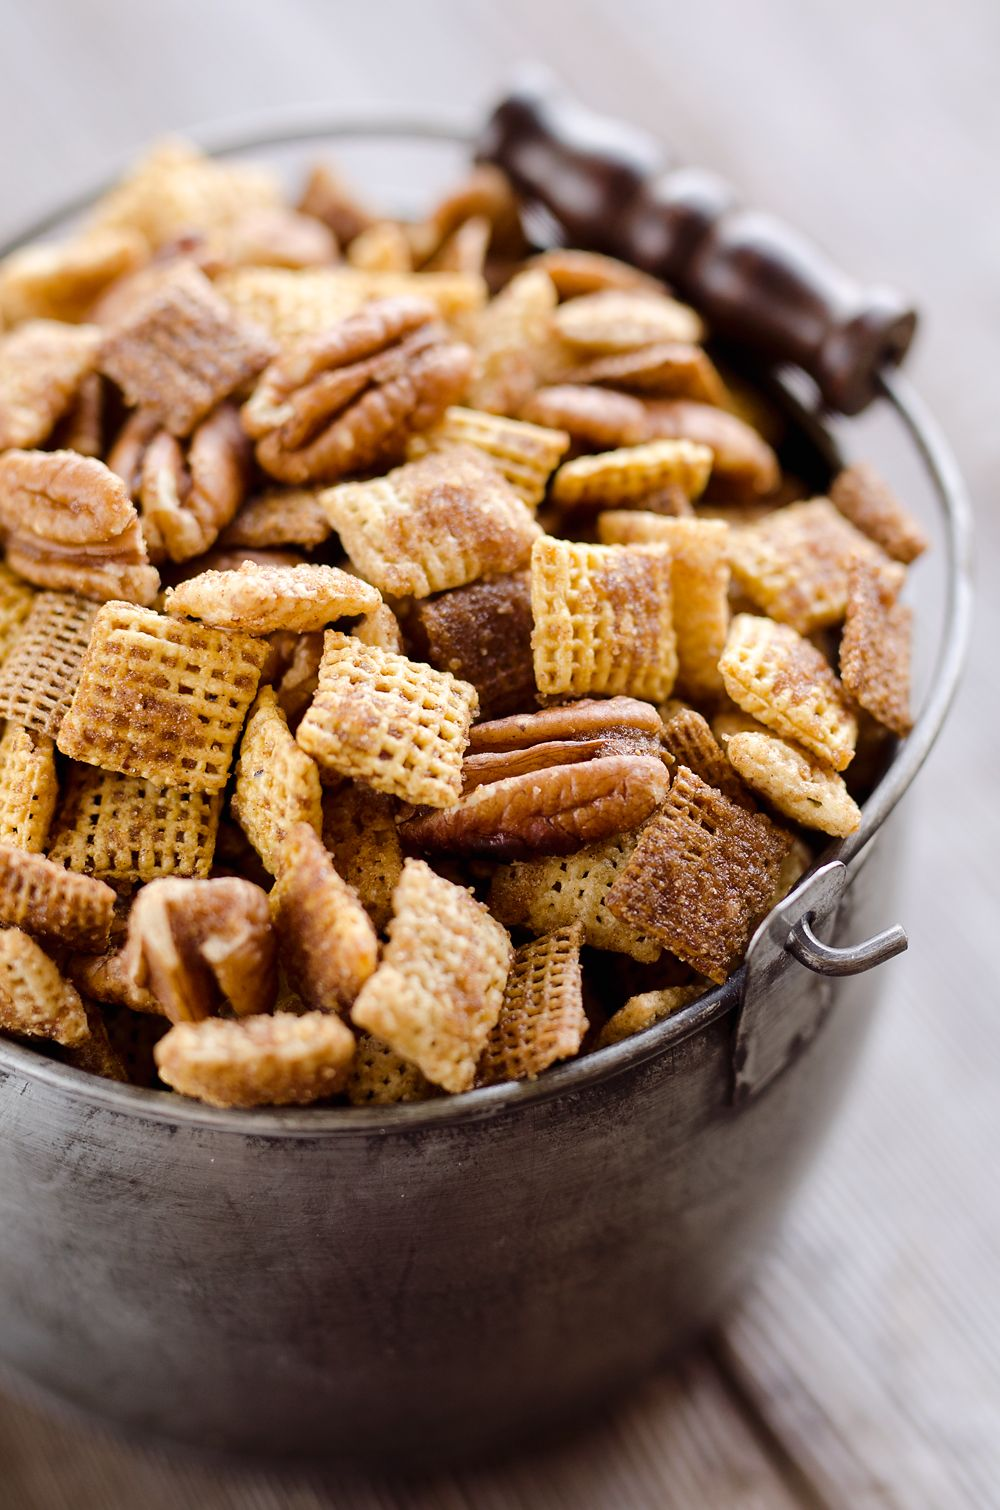 Sweet & Spicy Pecan Snack Mix is a delicious treat with